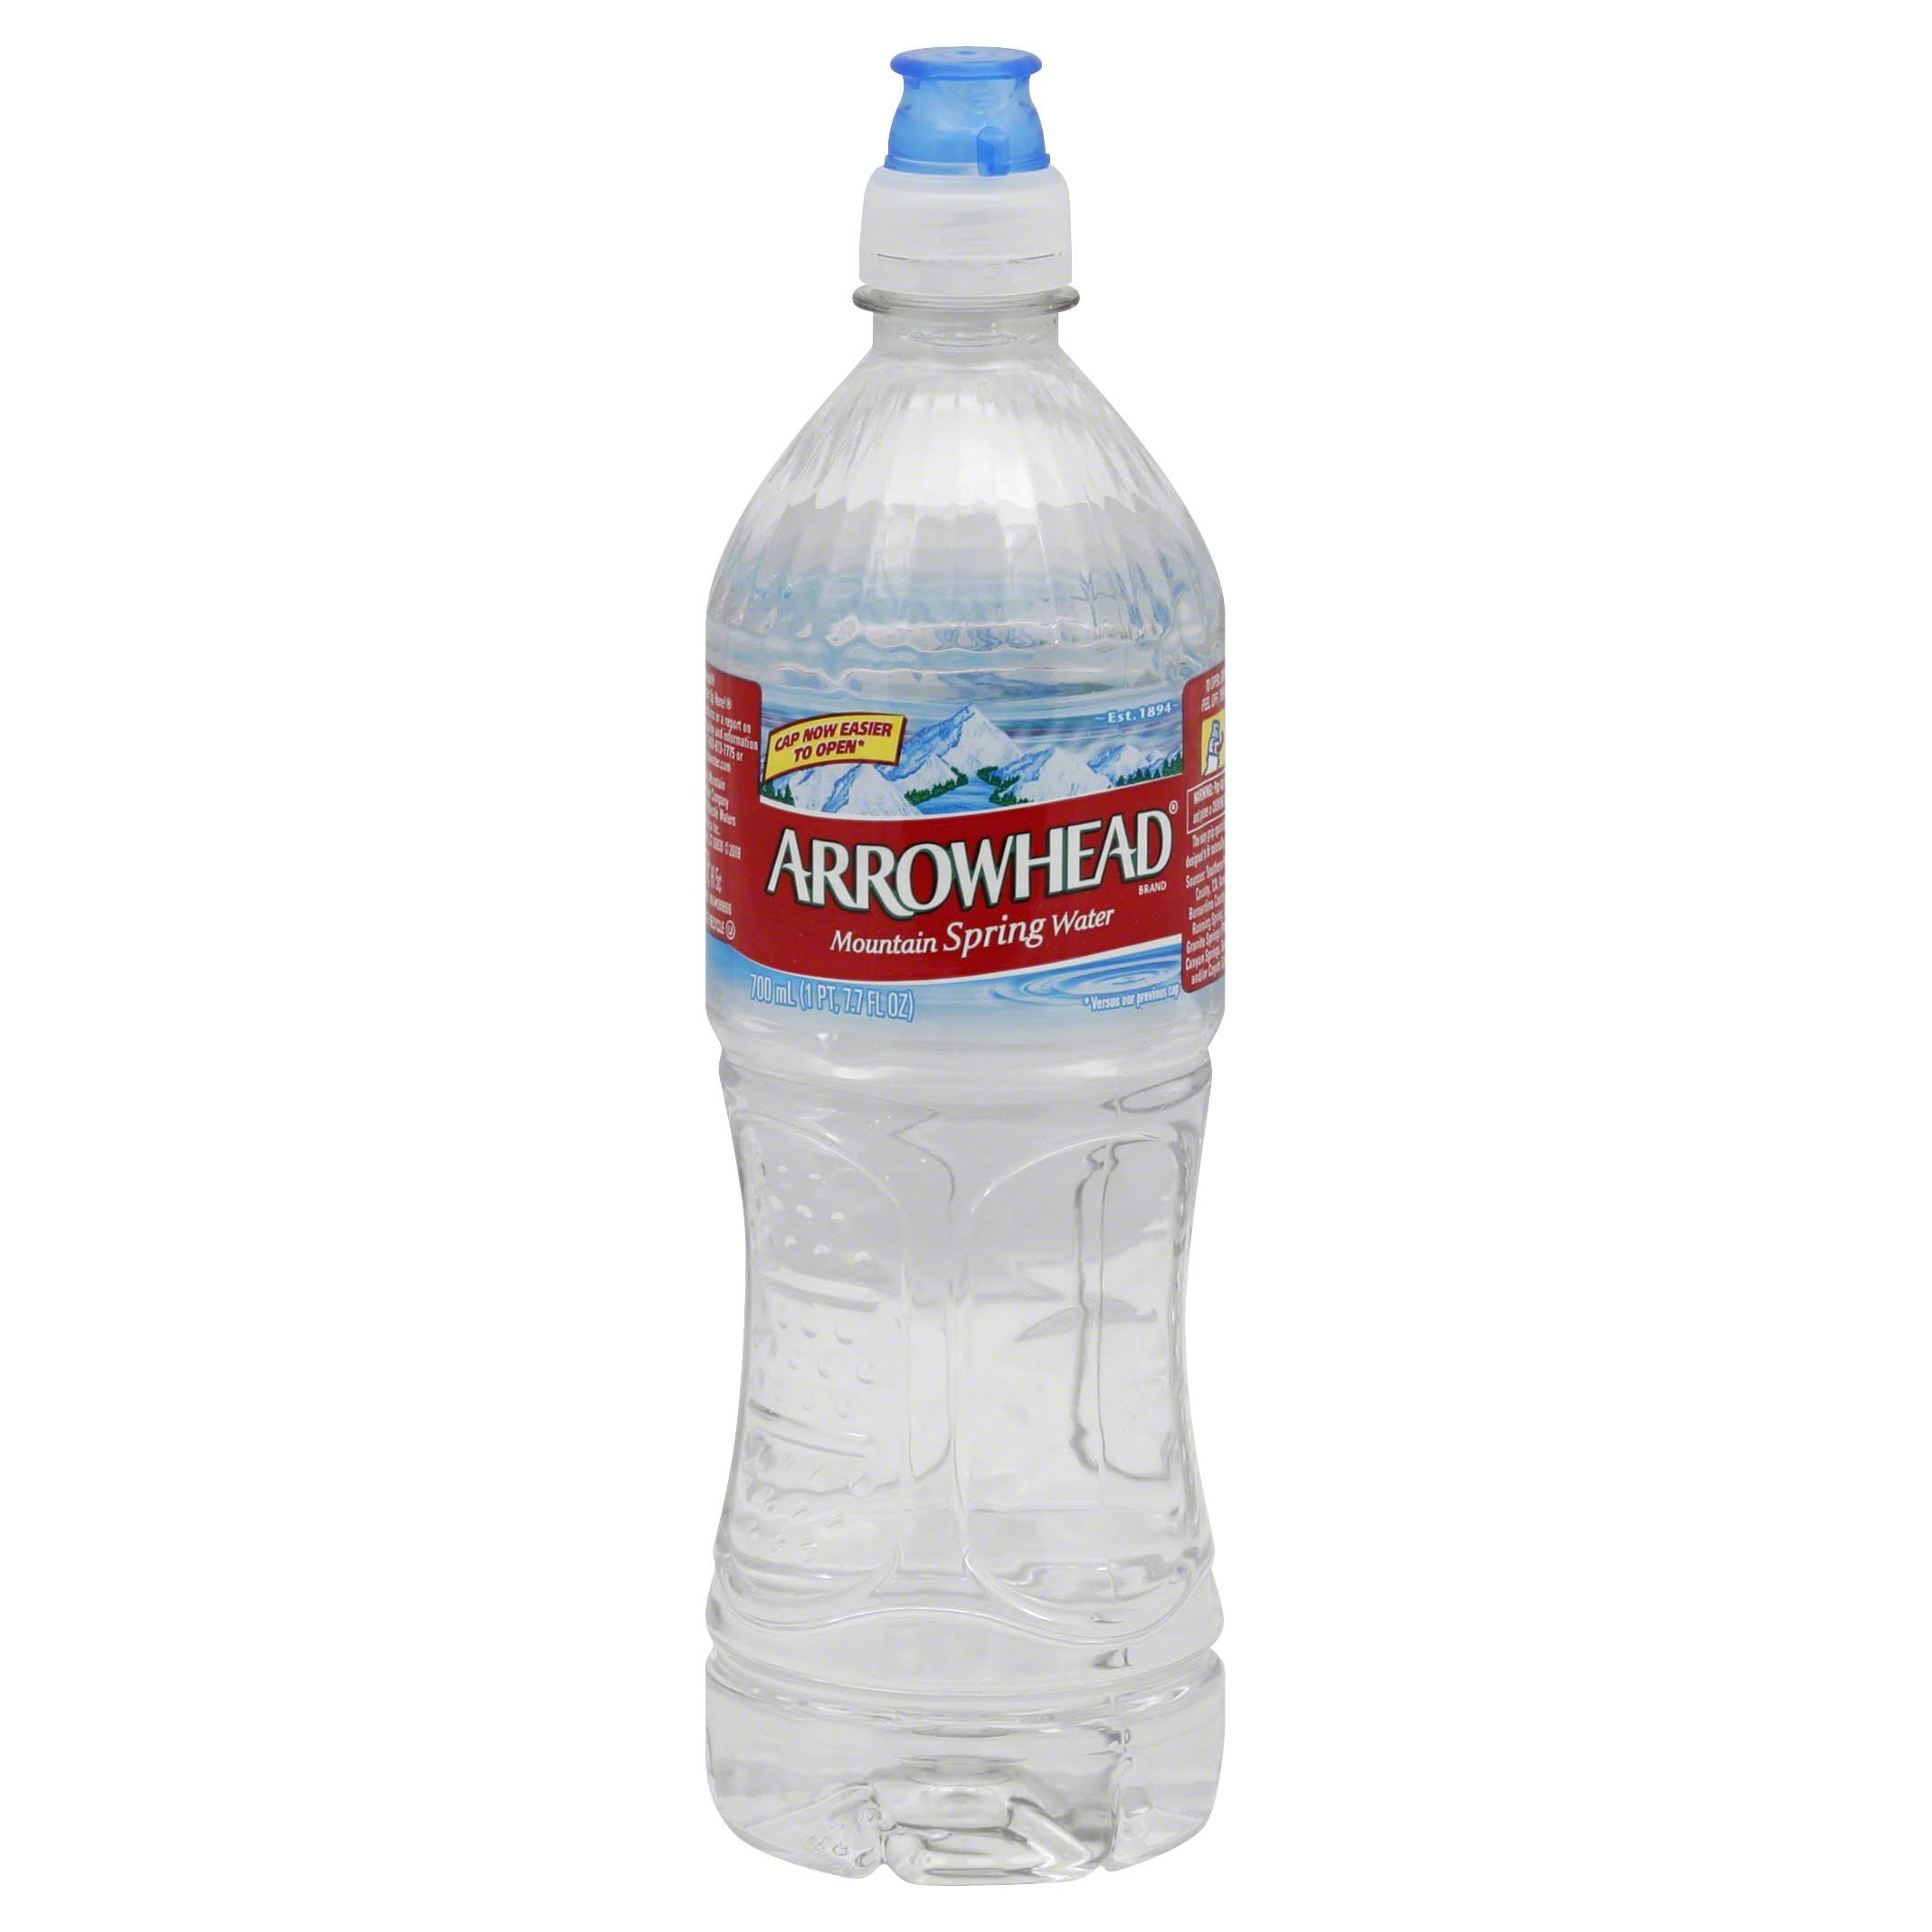 Arrowhead Water, Mountain Spring - 23.7 fl oz